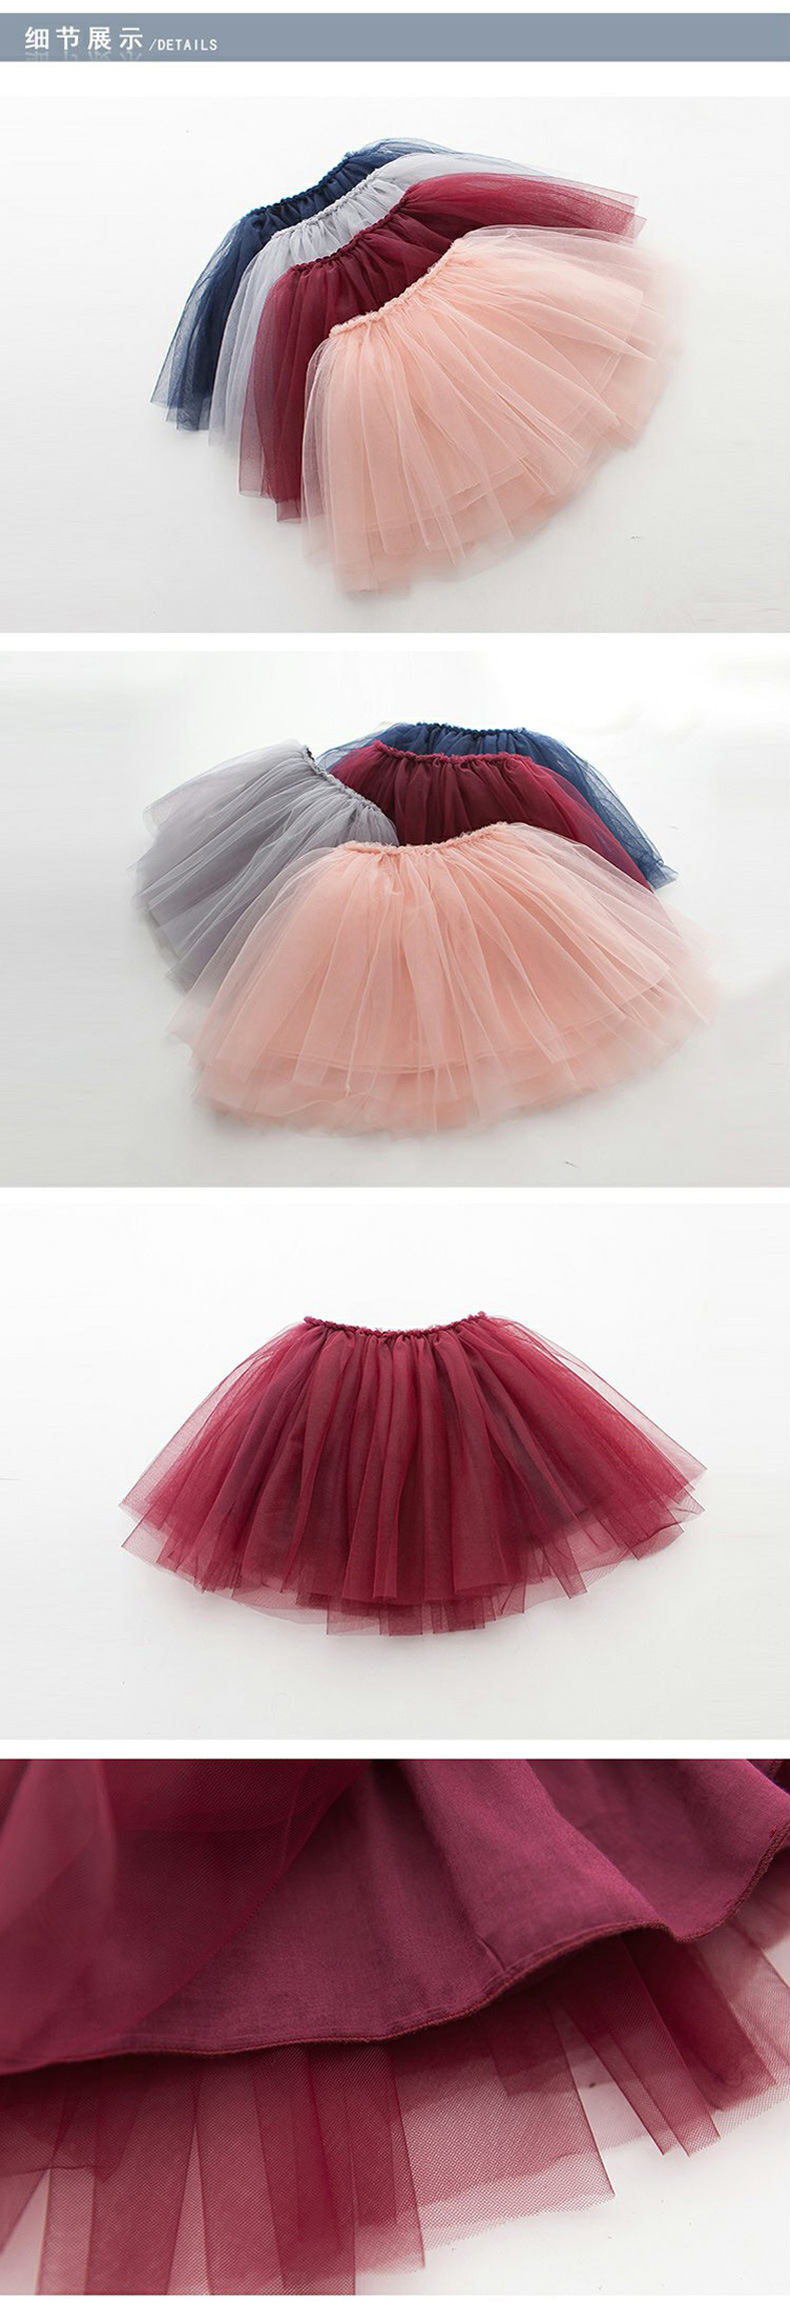 Tutu Skirt Tulle Girls Skirts Knee Length For Kids School Dance Fluffy Red Black Grey Color Princess Style Girls Clothes  8